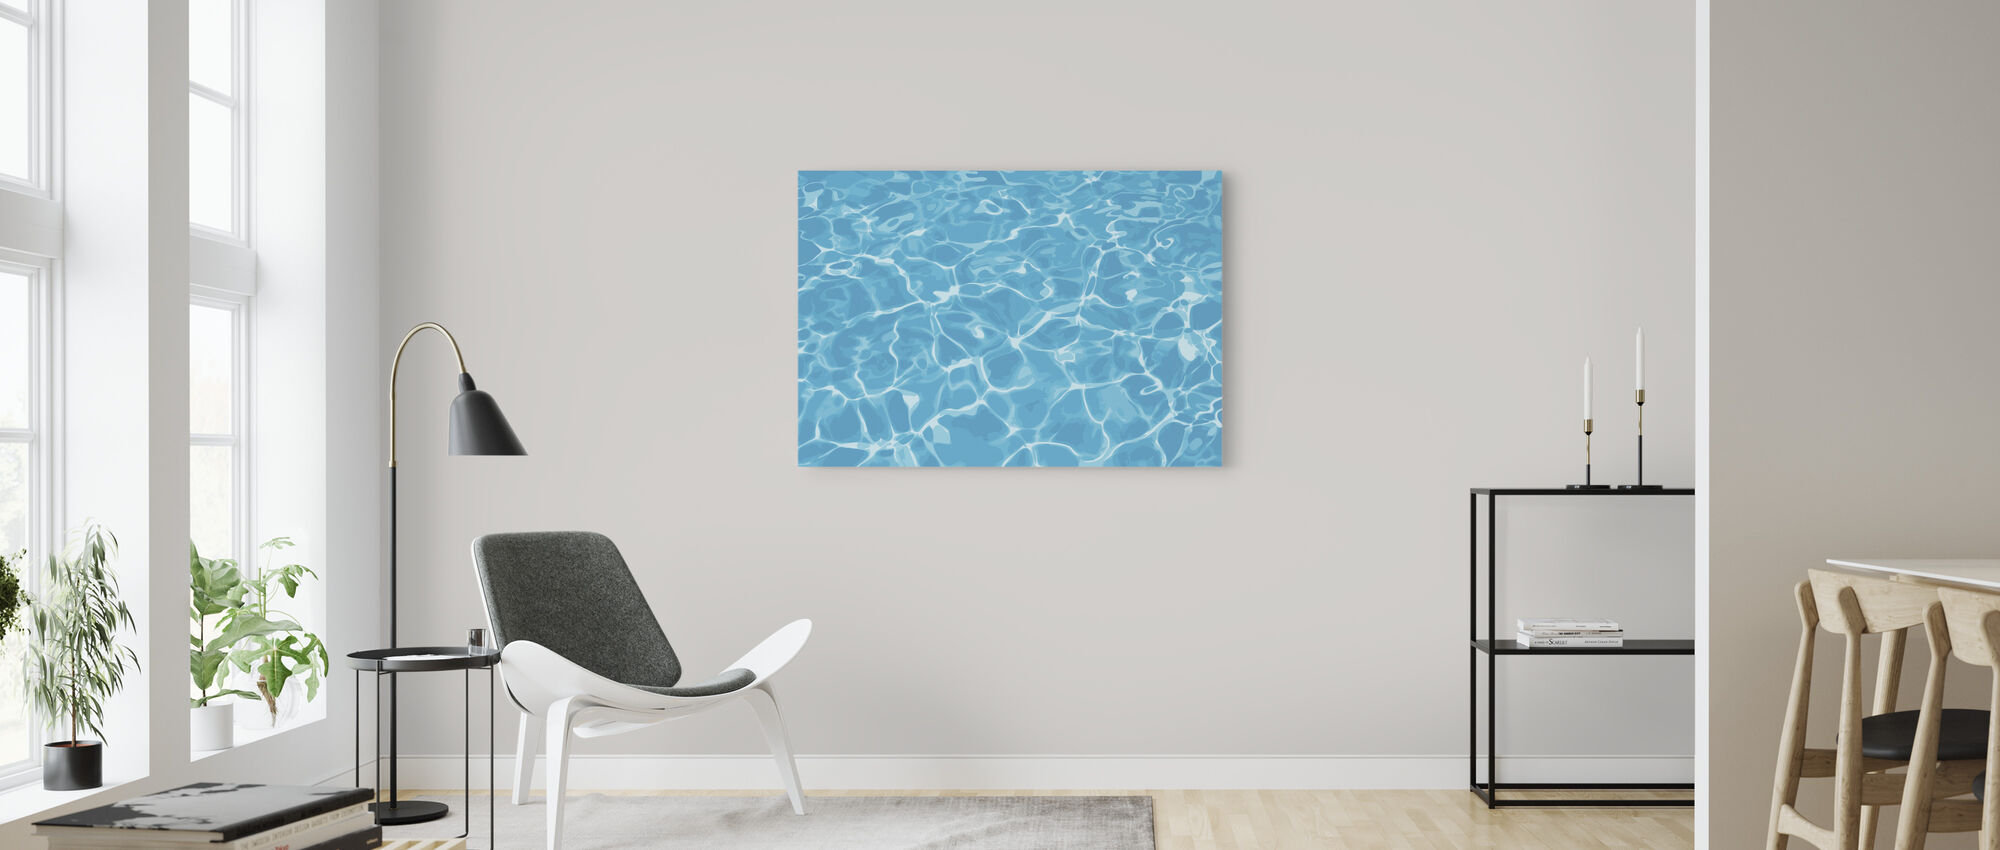 Reflection in Water - Canvas print - Living Room